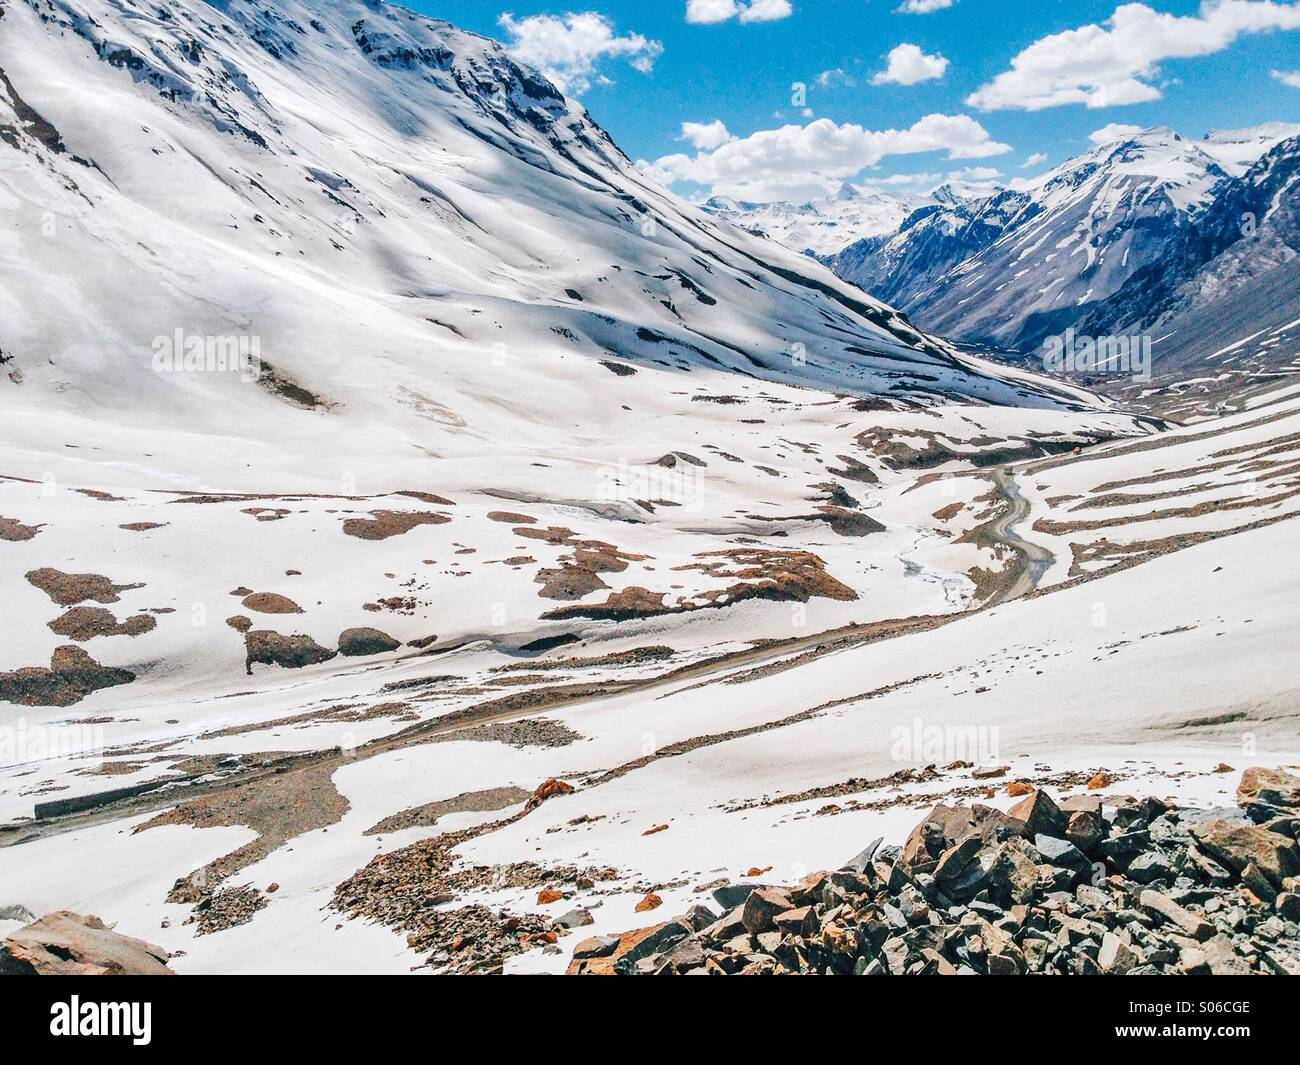 Manali Leh Highway at Baralacha Pass in Himachal Pradesh covered with snow in the Spring season. - Stock Image